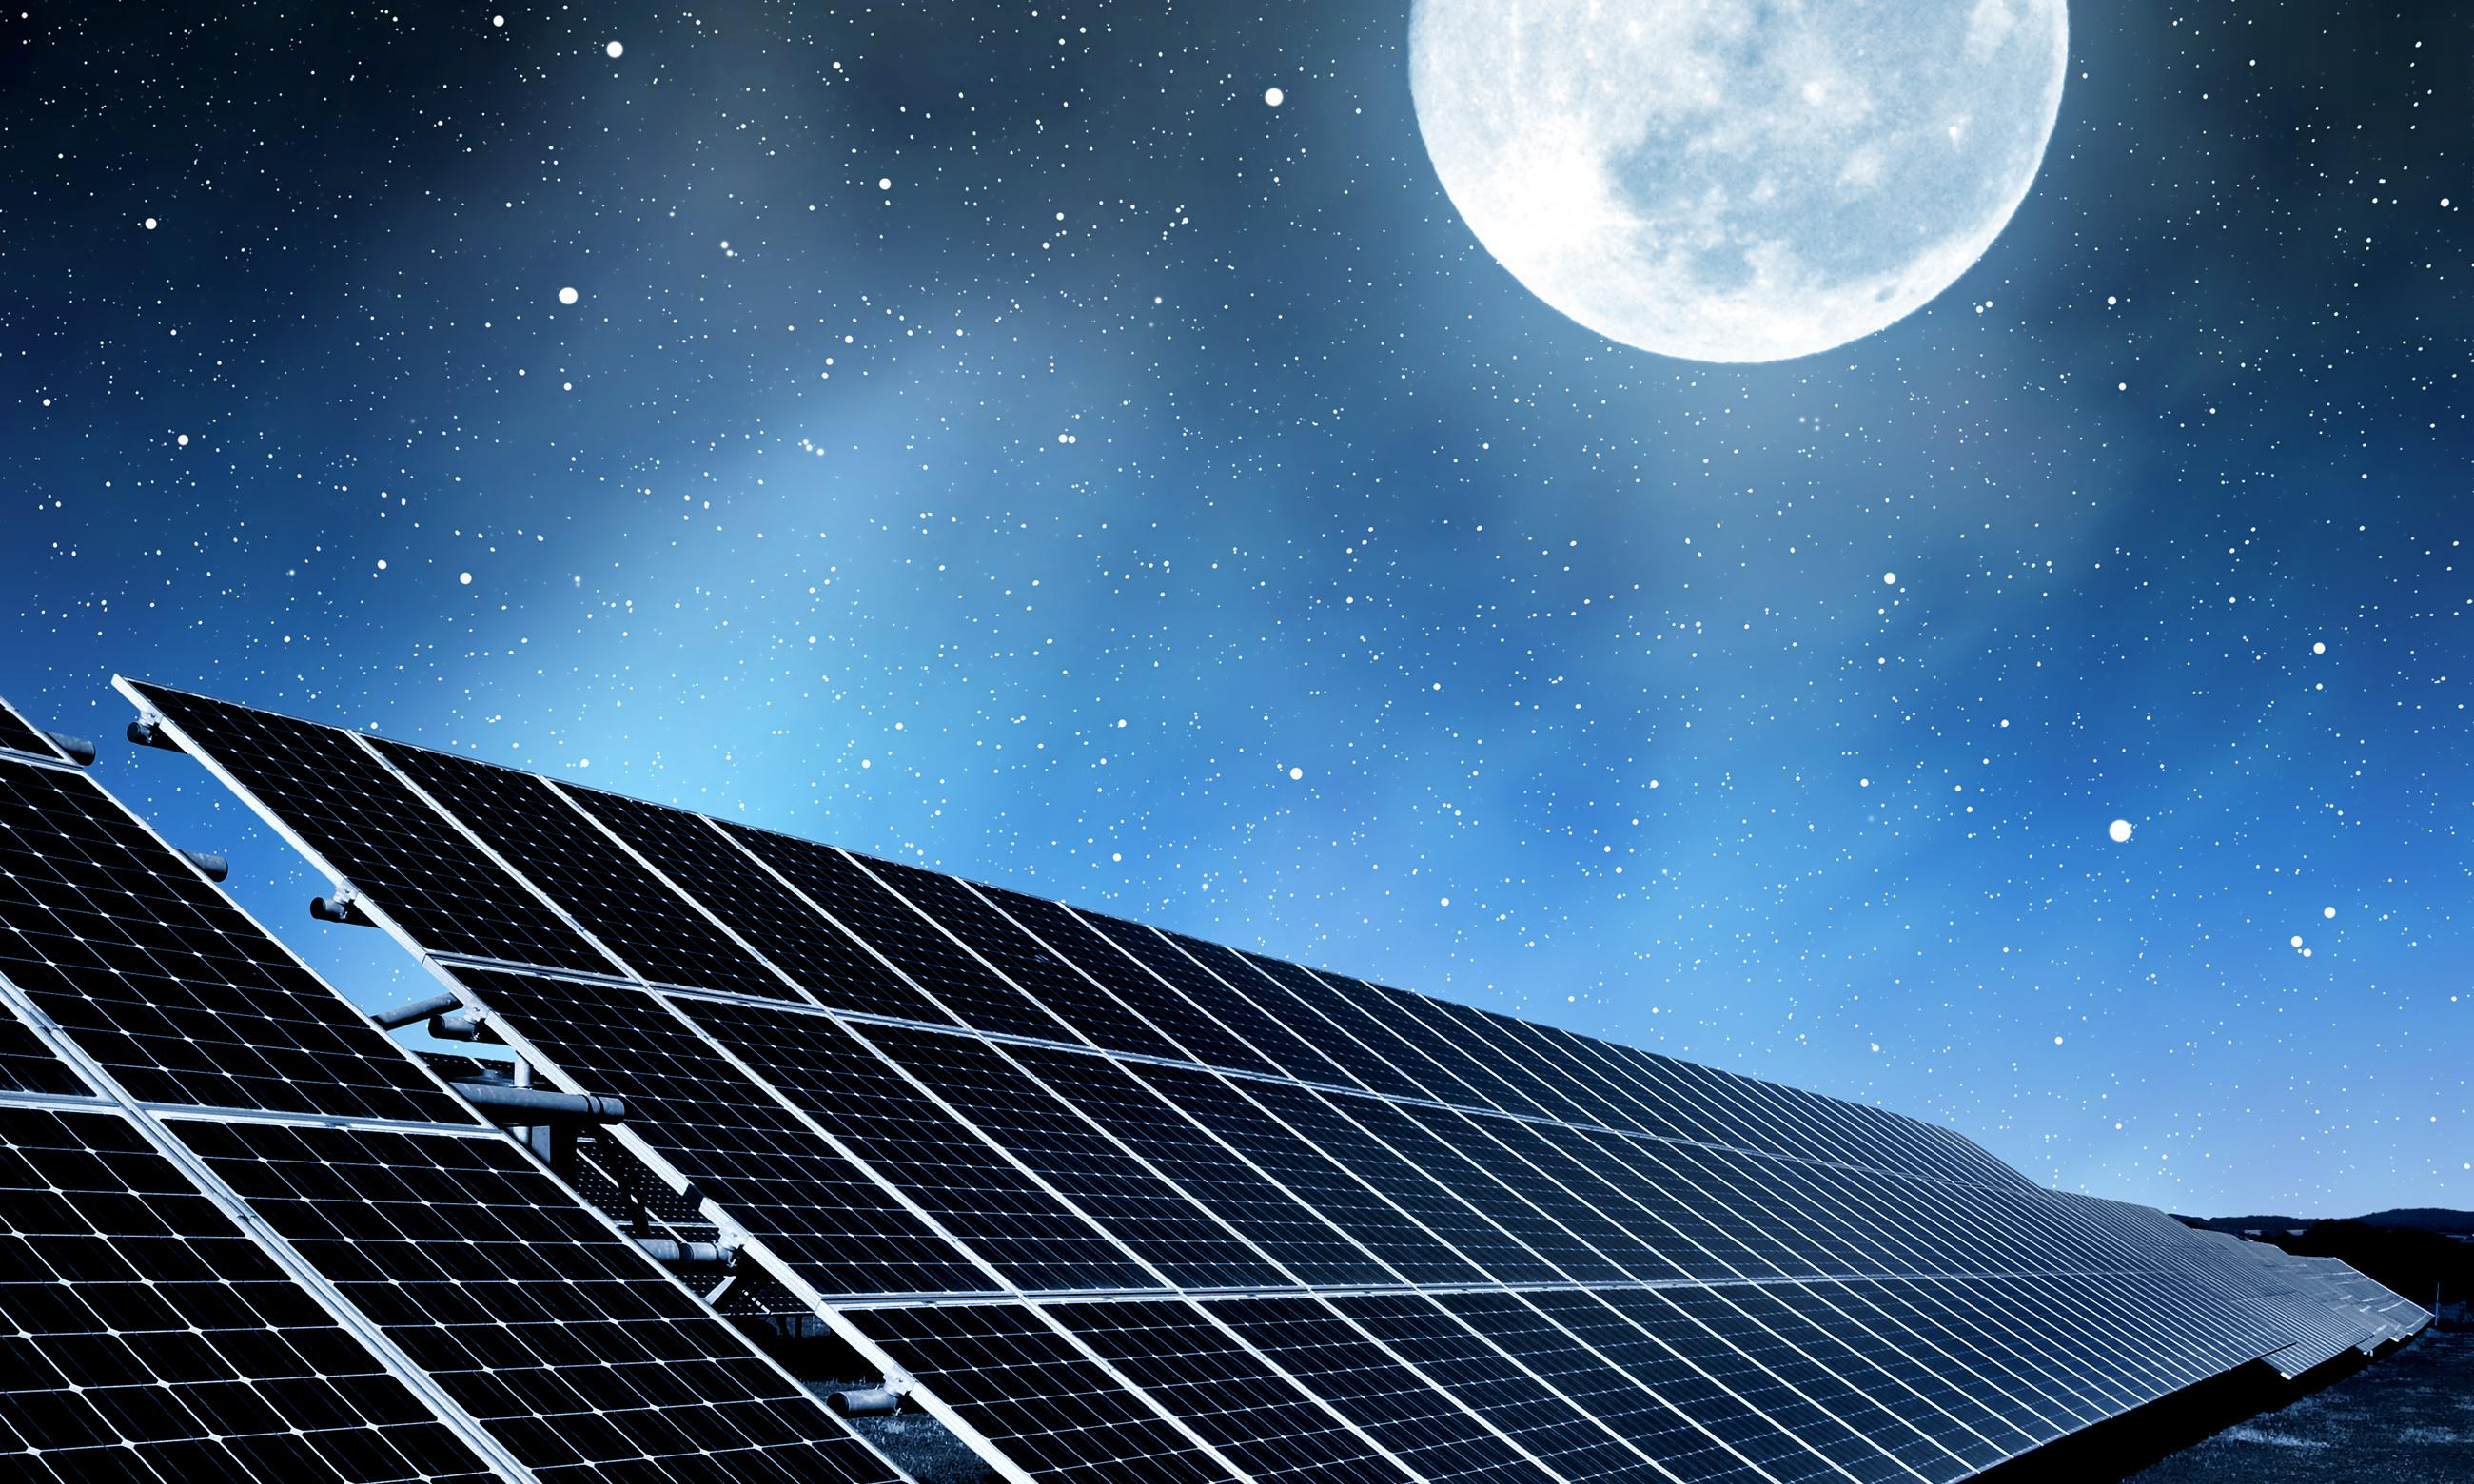 Solar farms can keep UK's lights on even at night